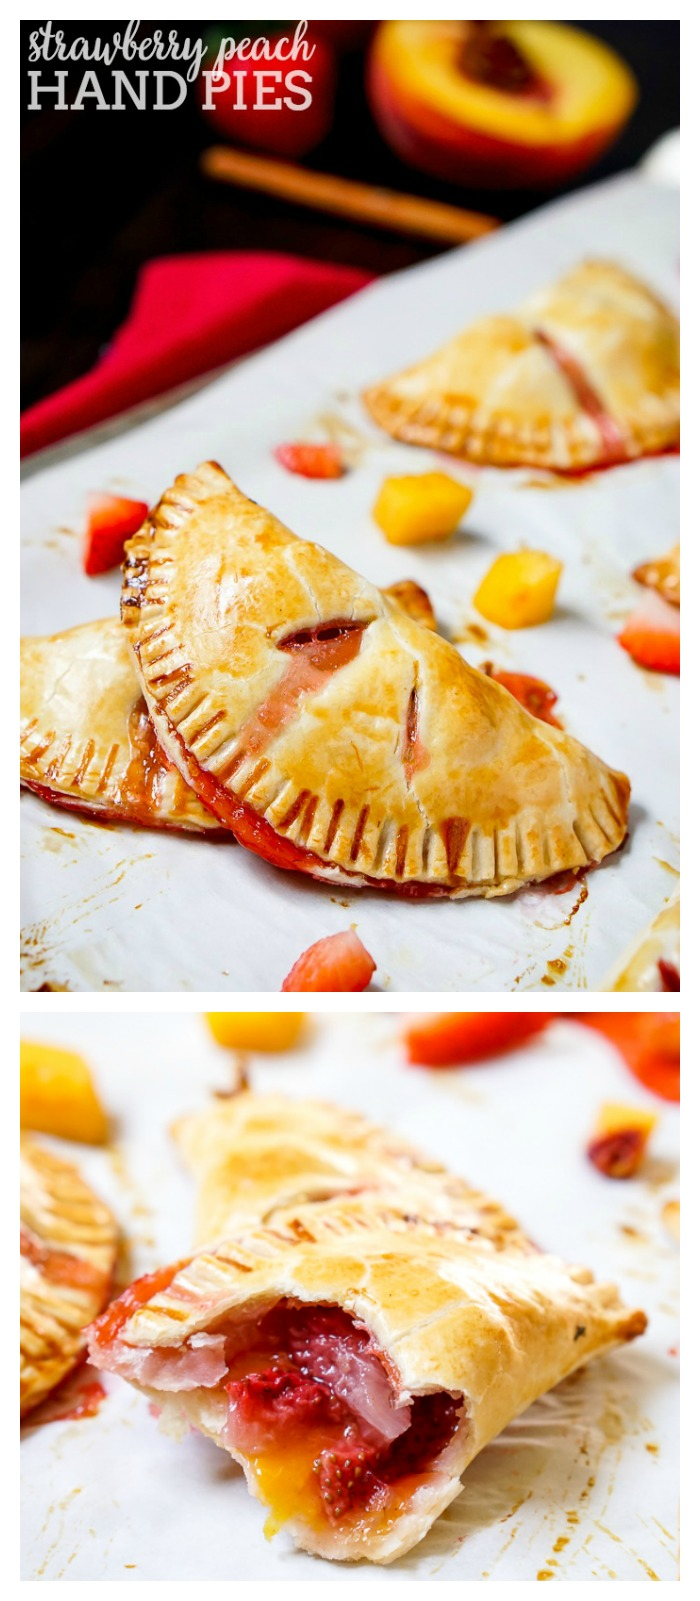 Strawberry Peach Hand Pies Recipe - Combine flavorful peaches with sweet strawberries to make a delicious hand pie filling! Fresh, tasty and easy to serve as party food! | The Love Nerds